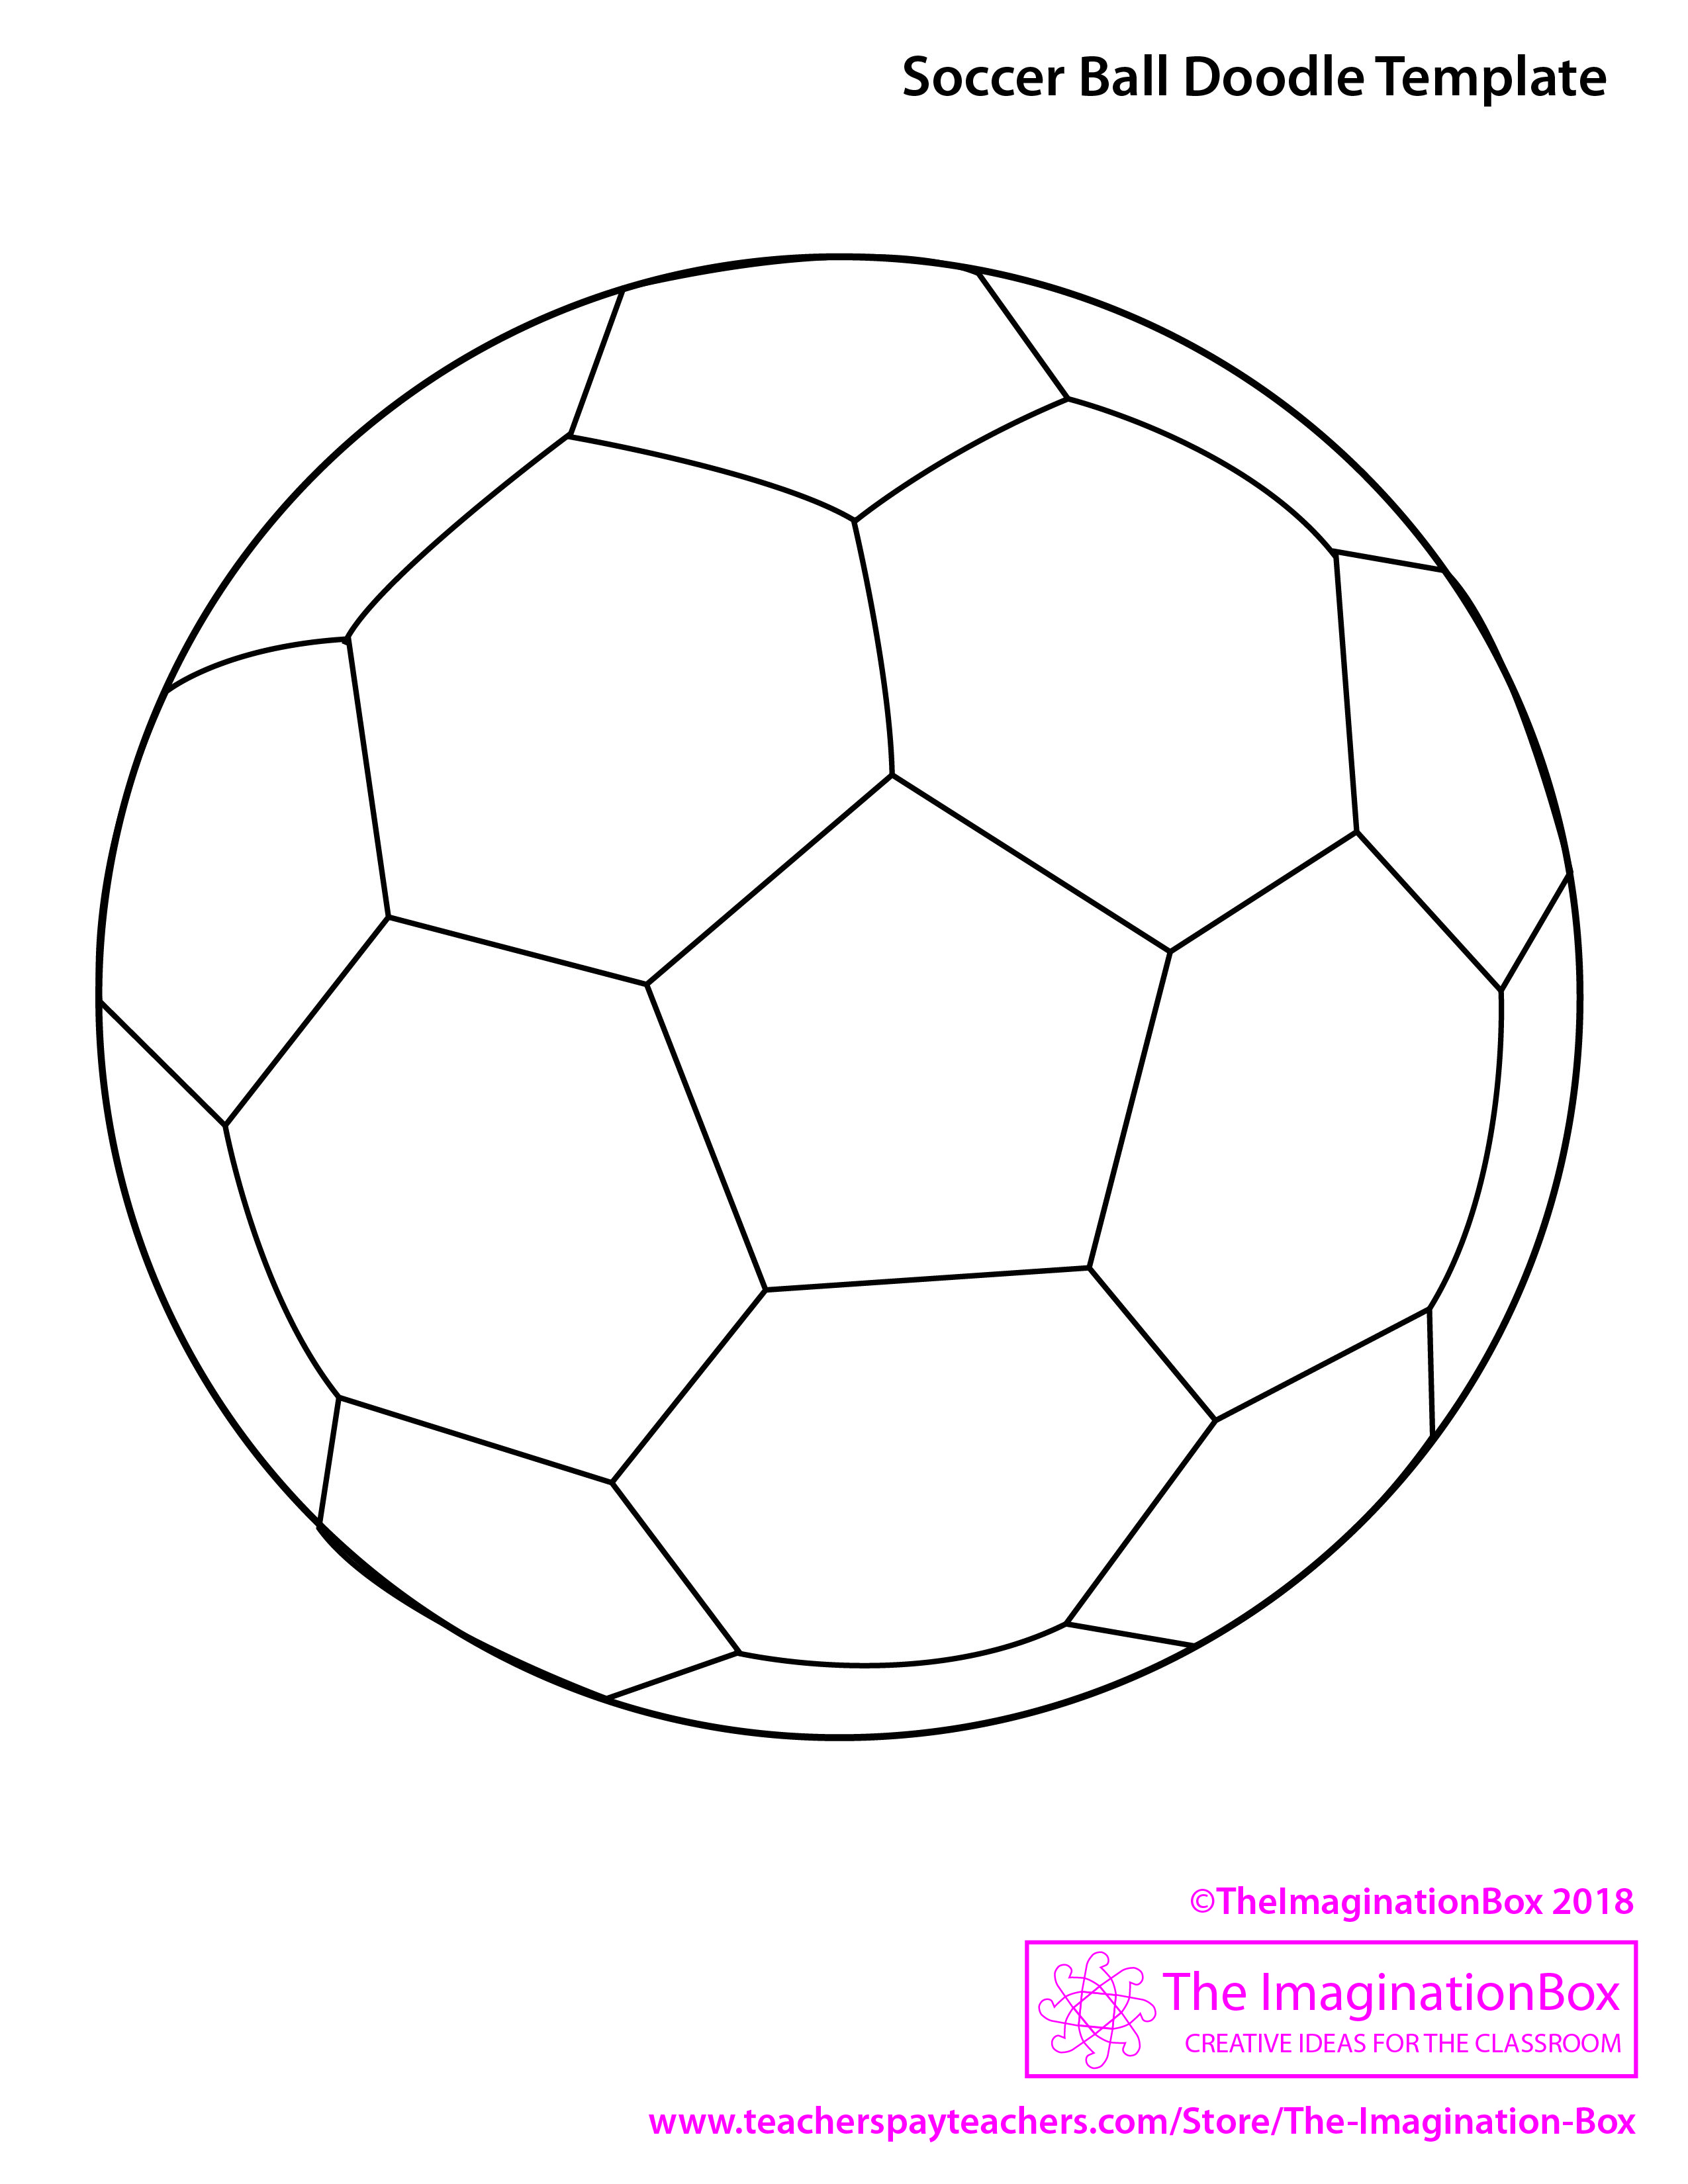 Soccer Ball Template Jpg 2 550 3 300 Pixels Back To School Art Coloring Pictures For Kids All About Me Art